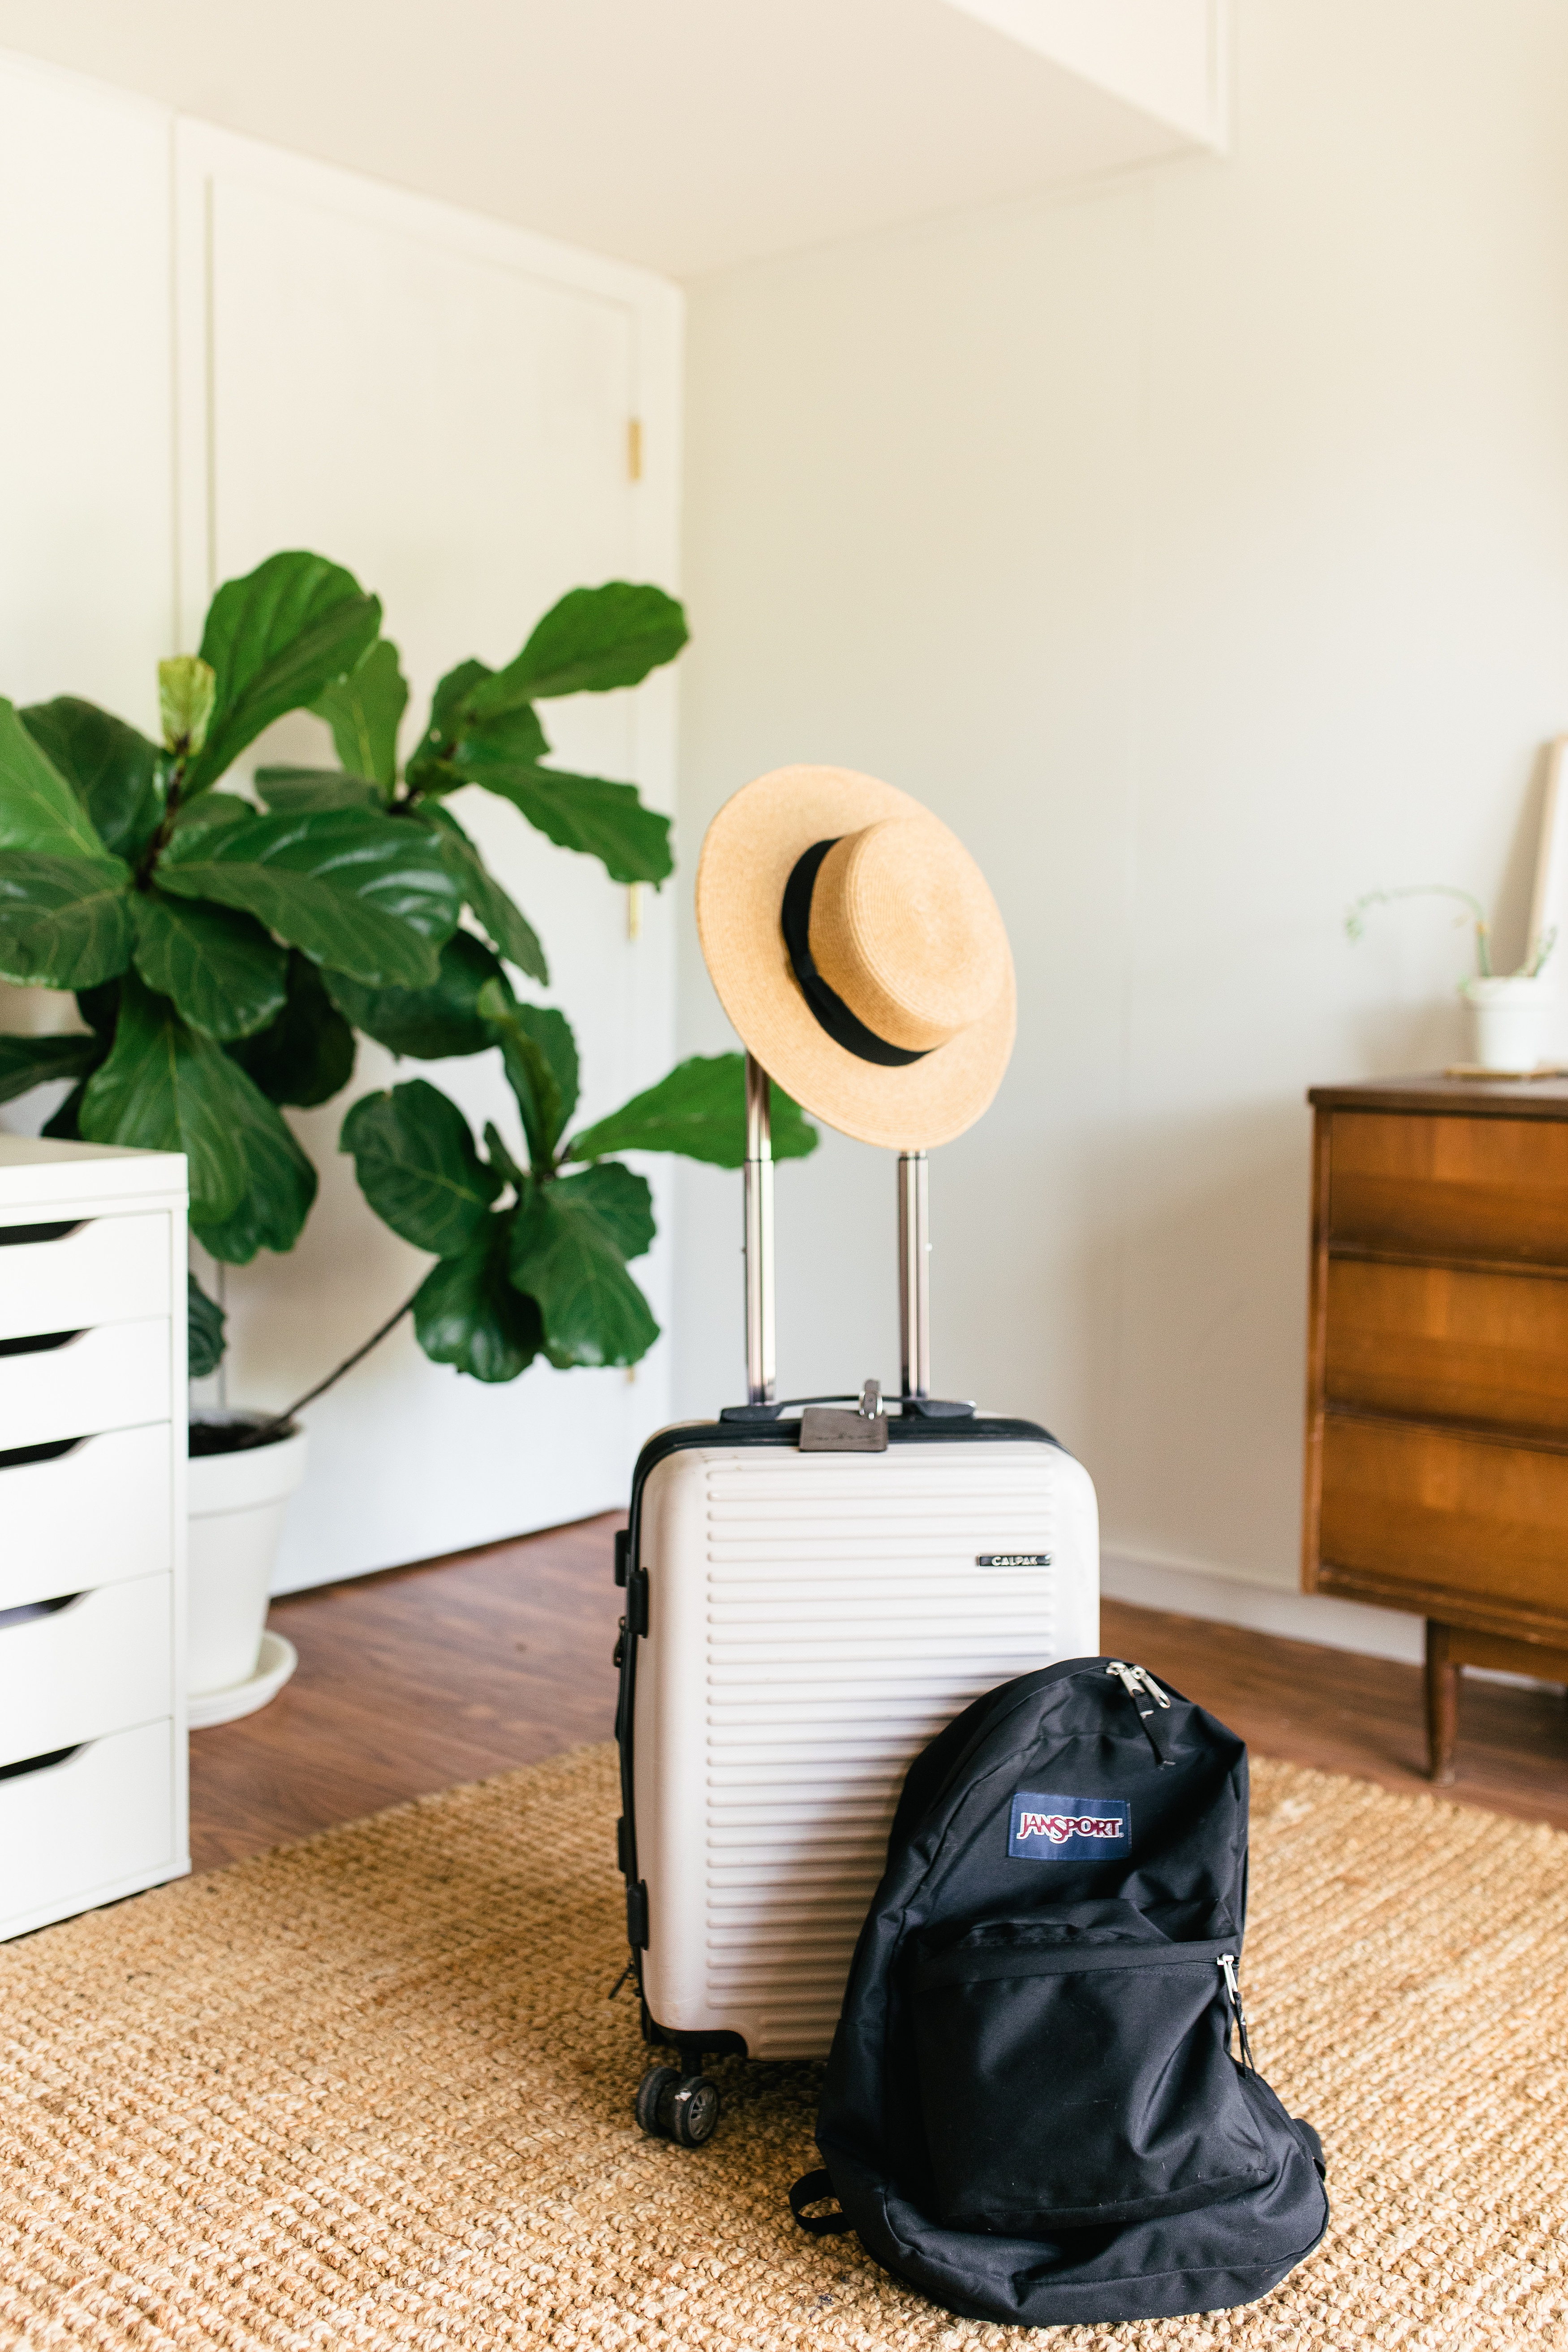 suitcase and backpack in room with plant in the background